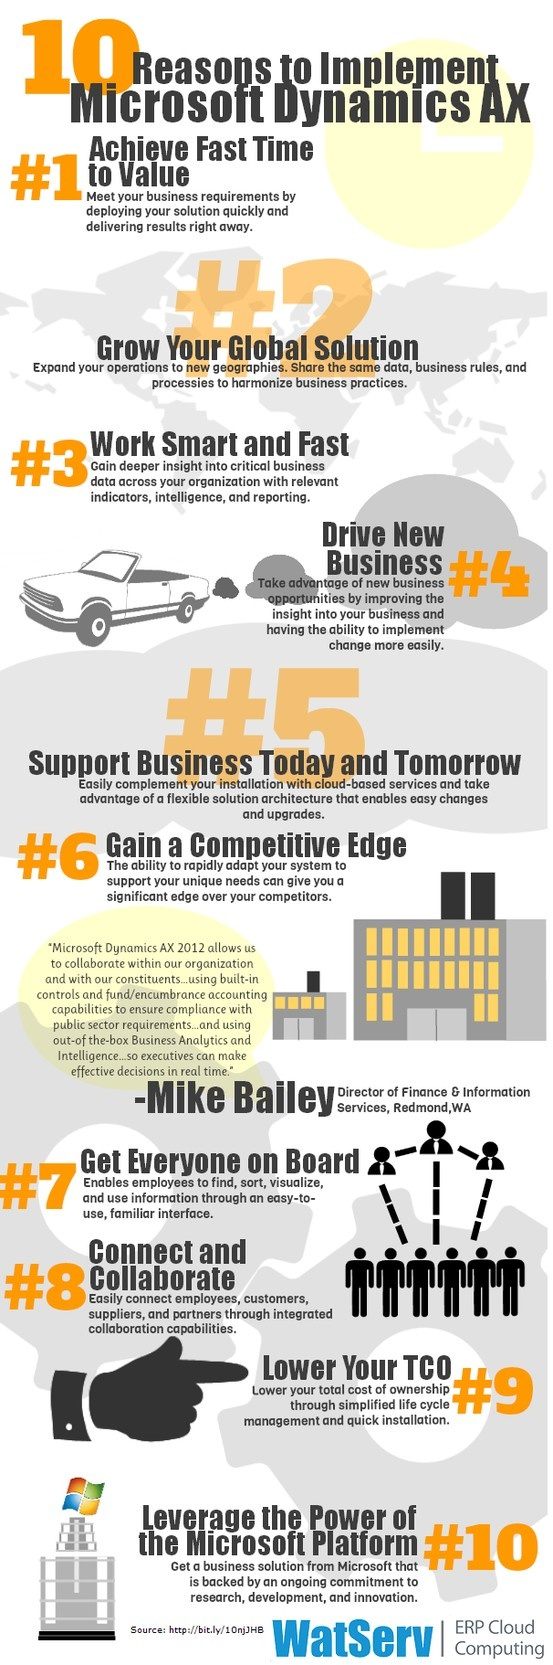 10 reasons to implement Microsoft Dynamics AX